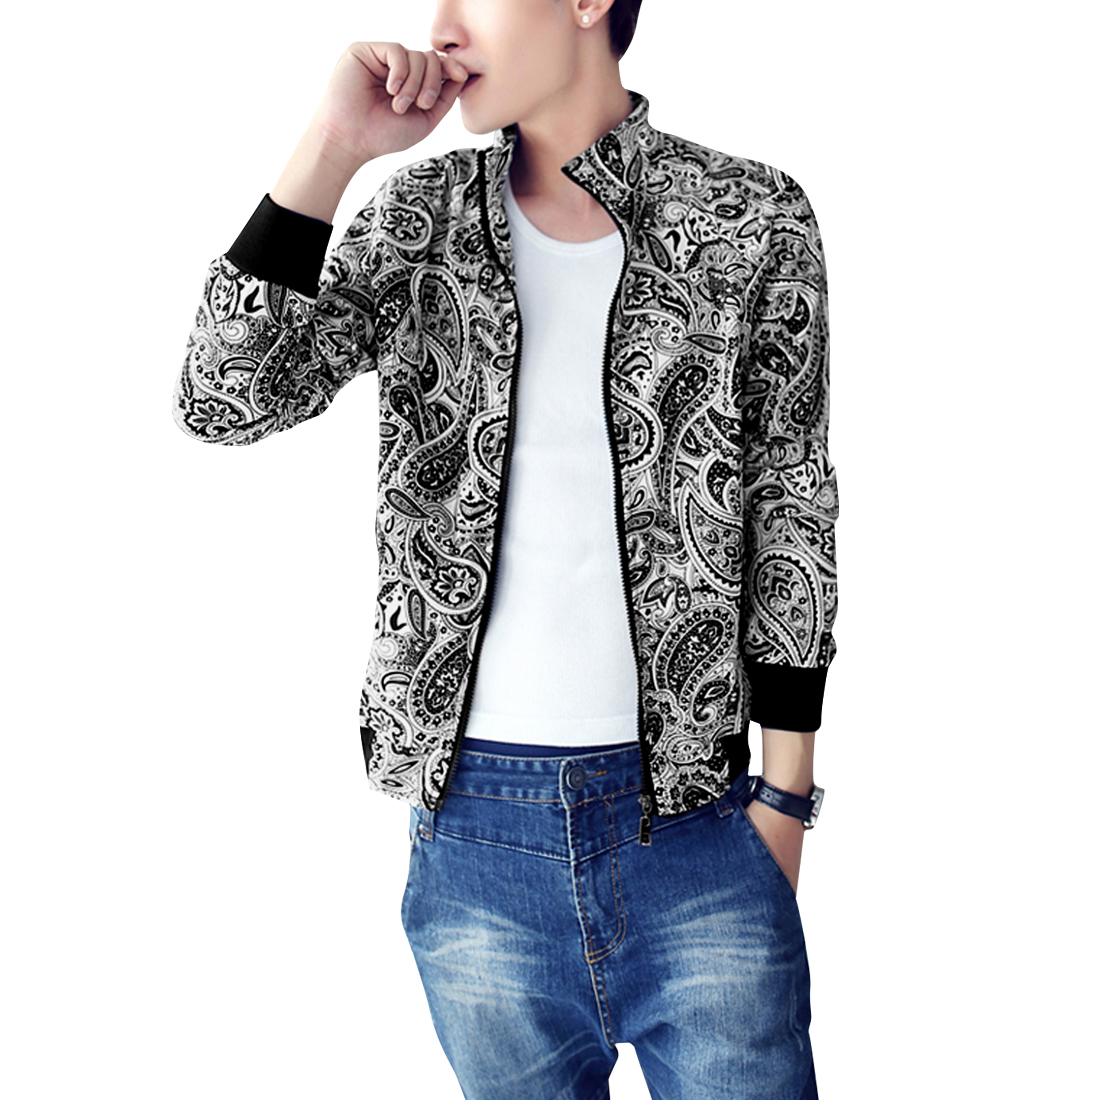 Men Stand Collar Zip Up Paisleys Black White Casual Jacket S